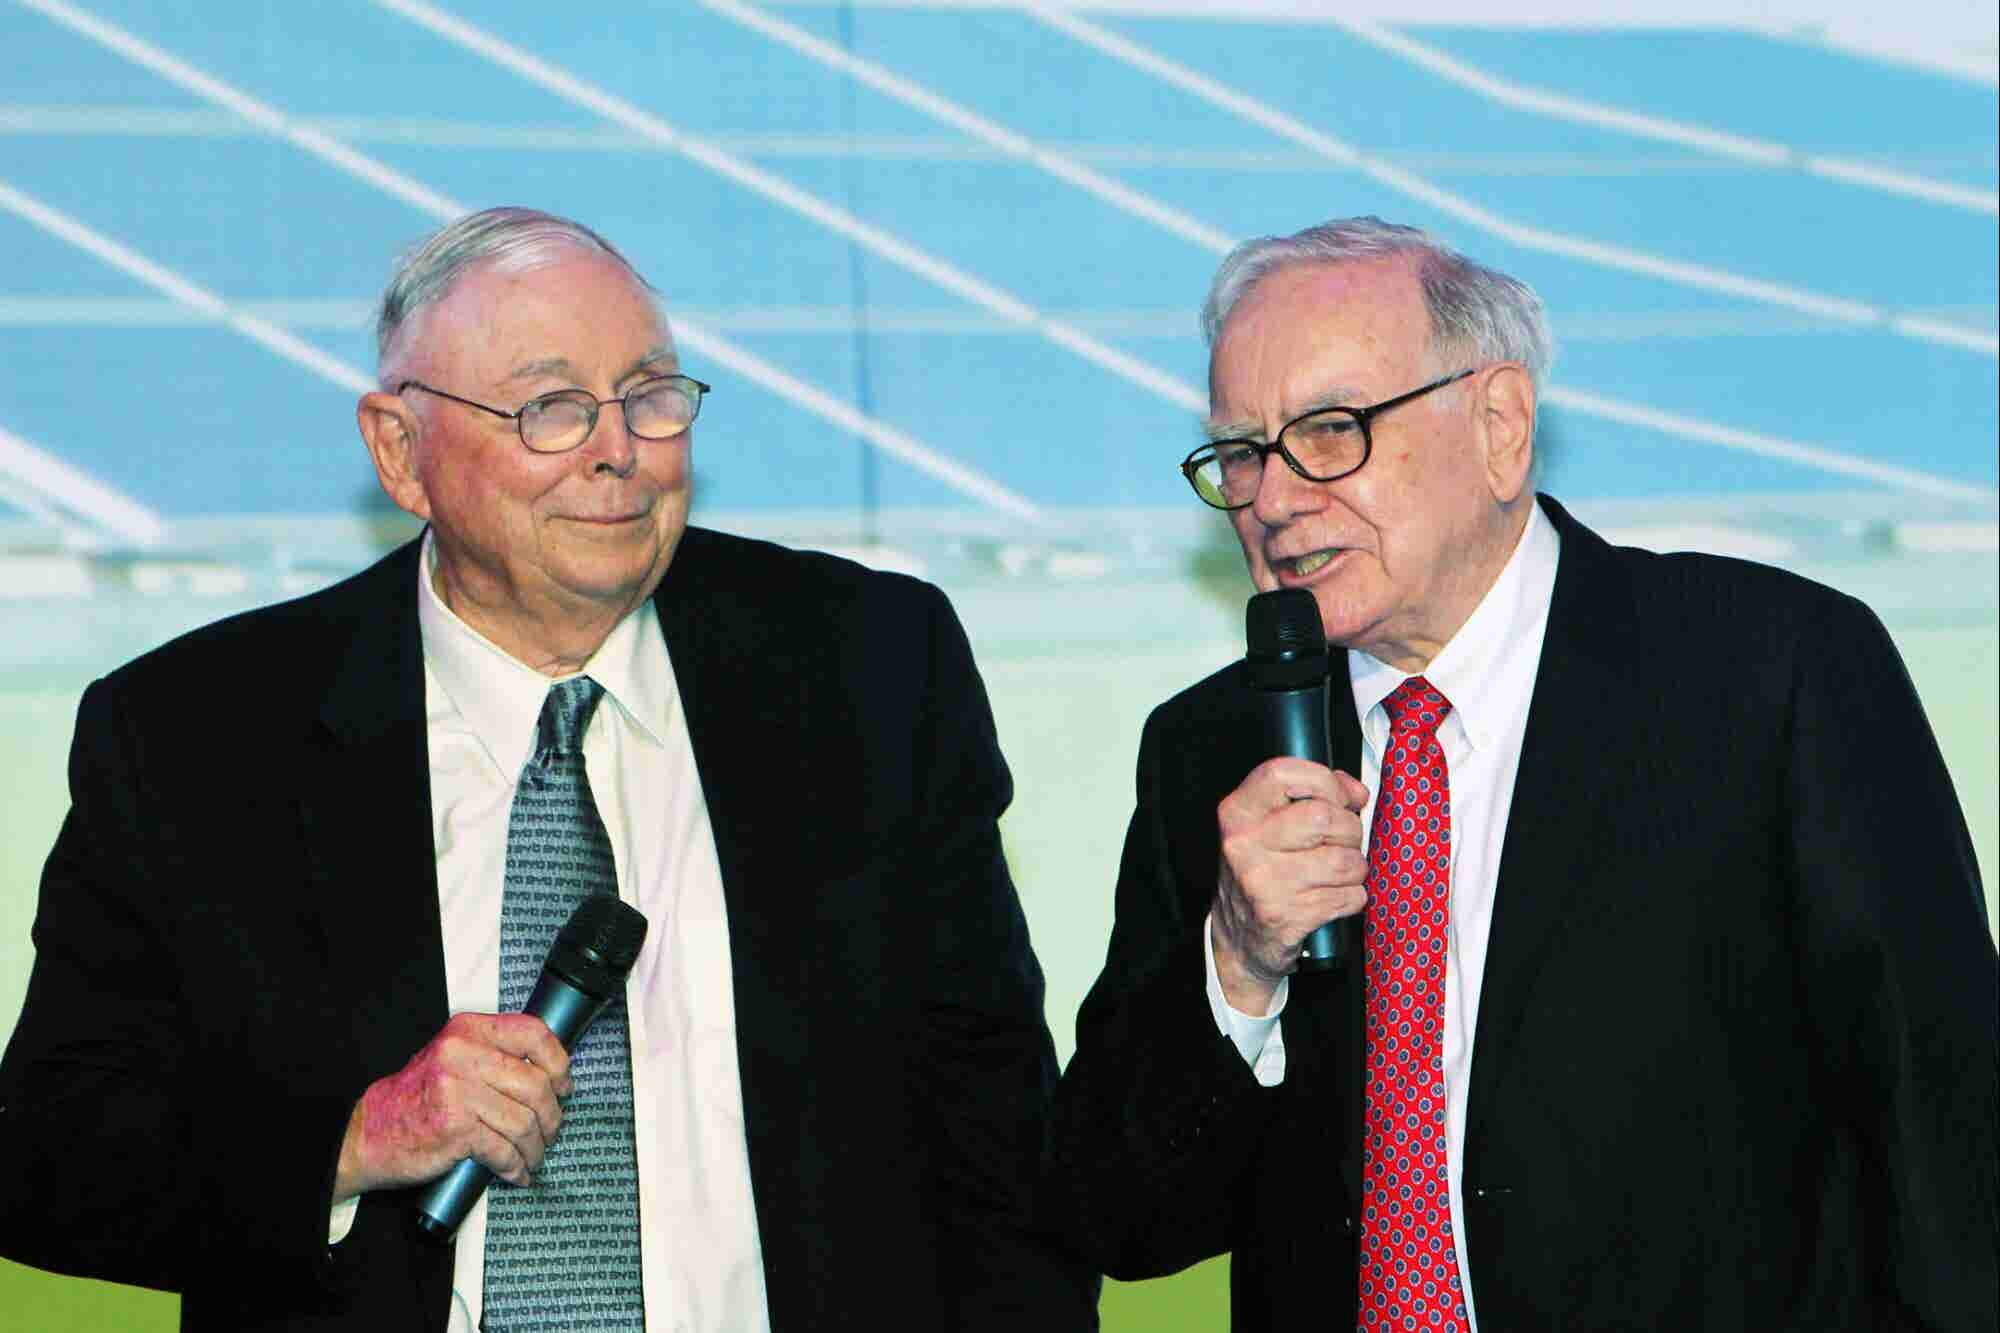 4 Lessons Entrepreneurs Can Learn From the Wisdom of Charlie Munger